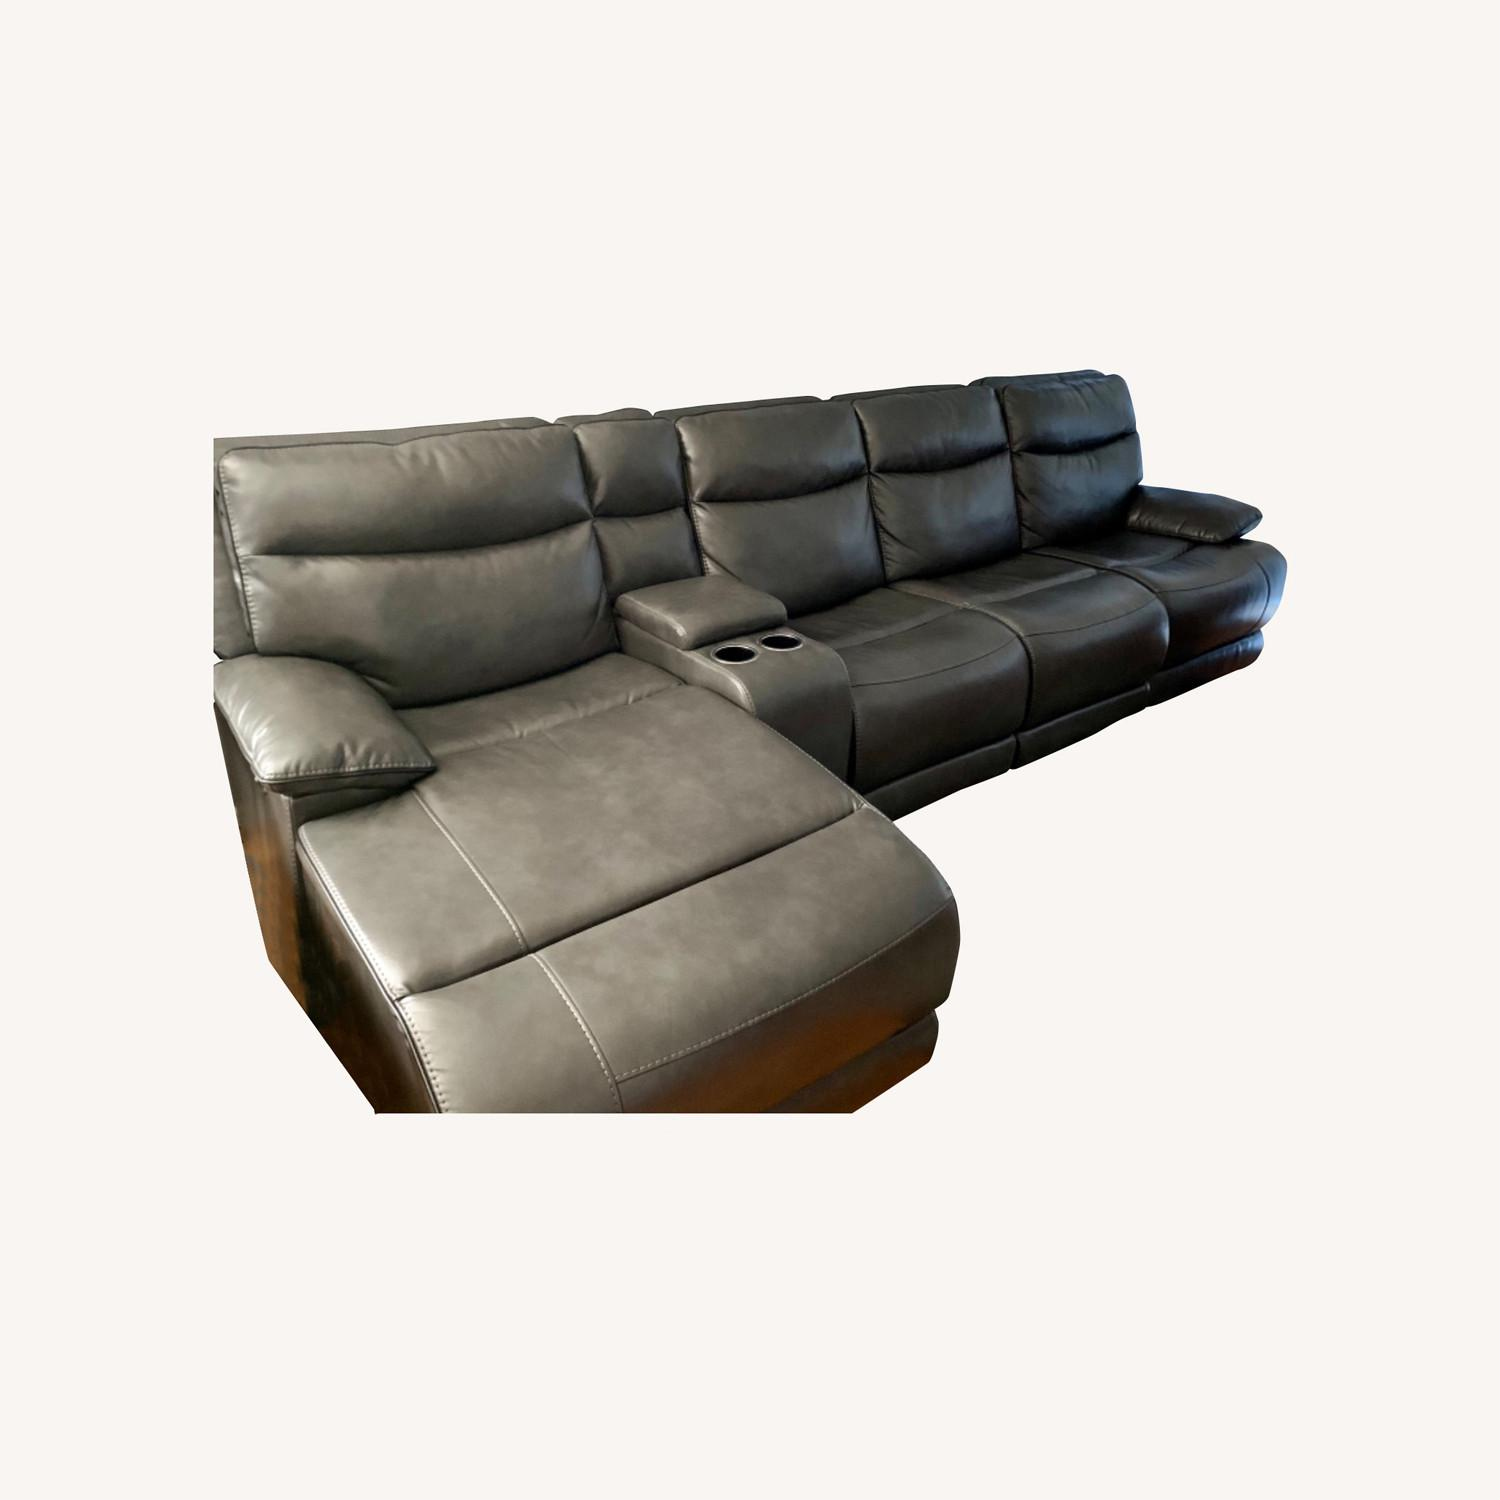 Bobs Furniture Grey Sectional - image-0